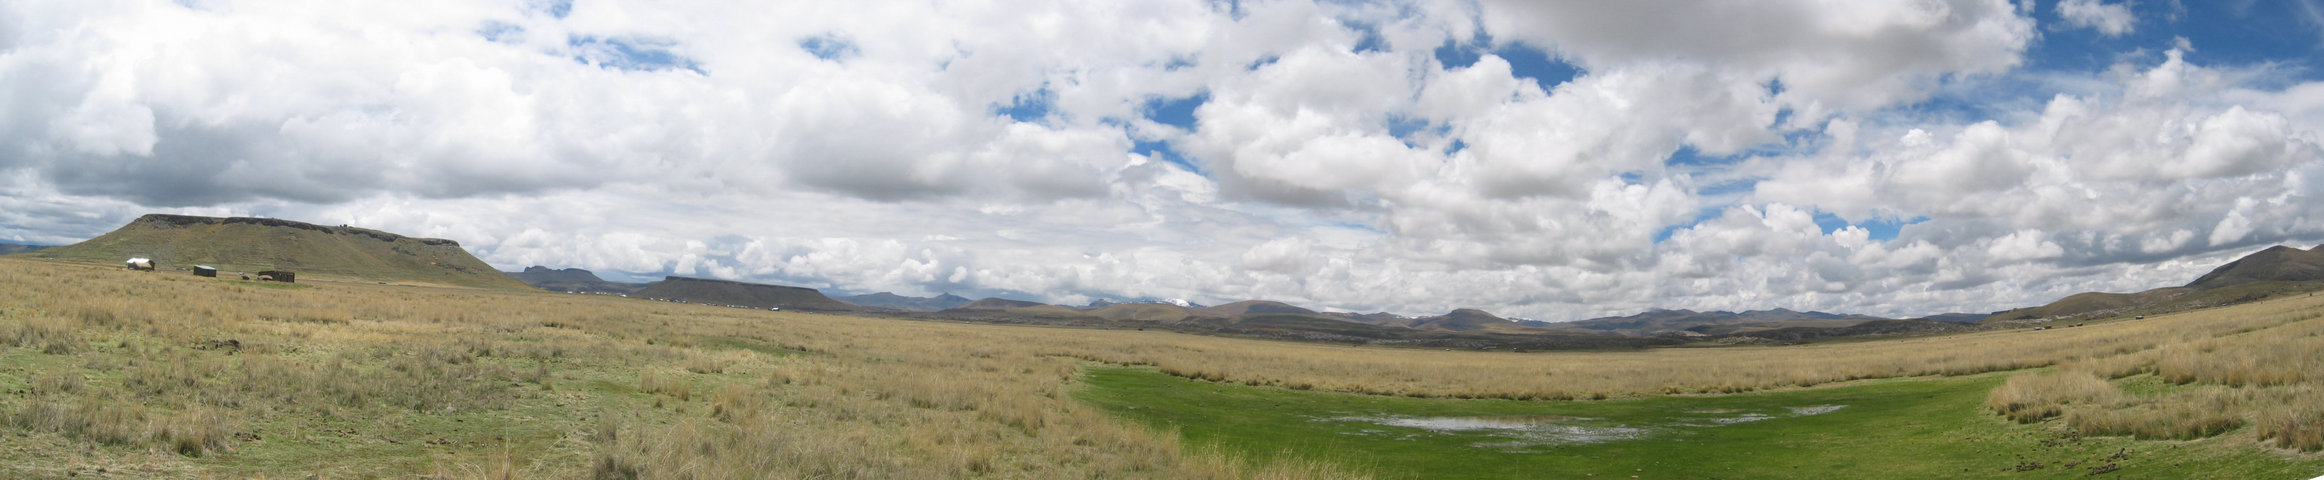 Panorama View of the Confluence